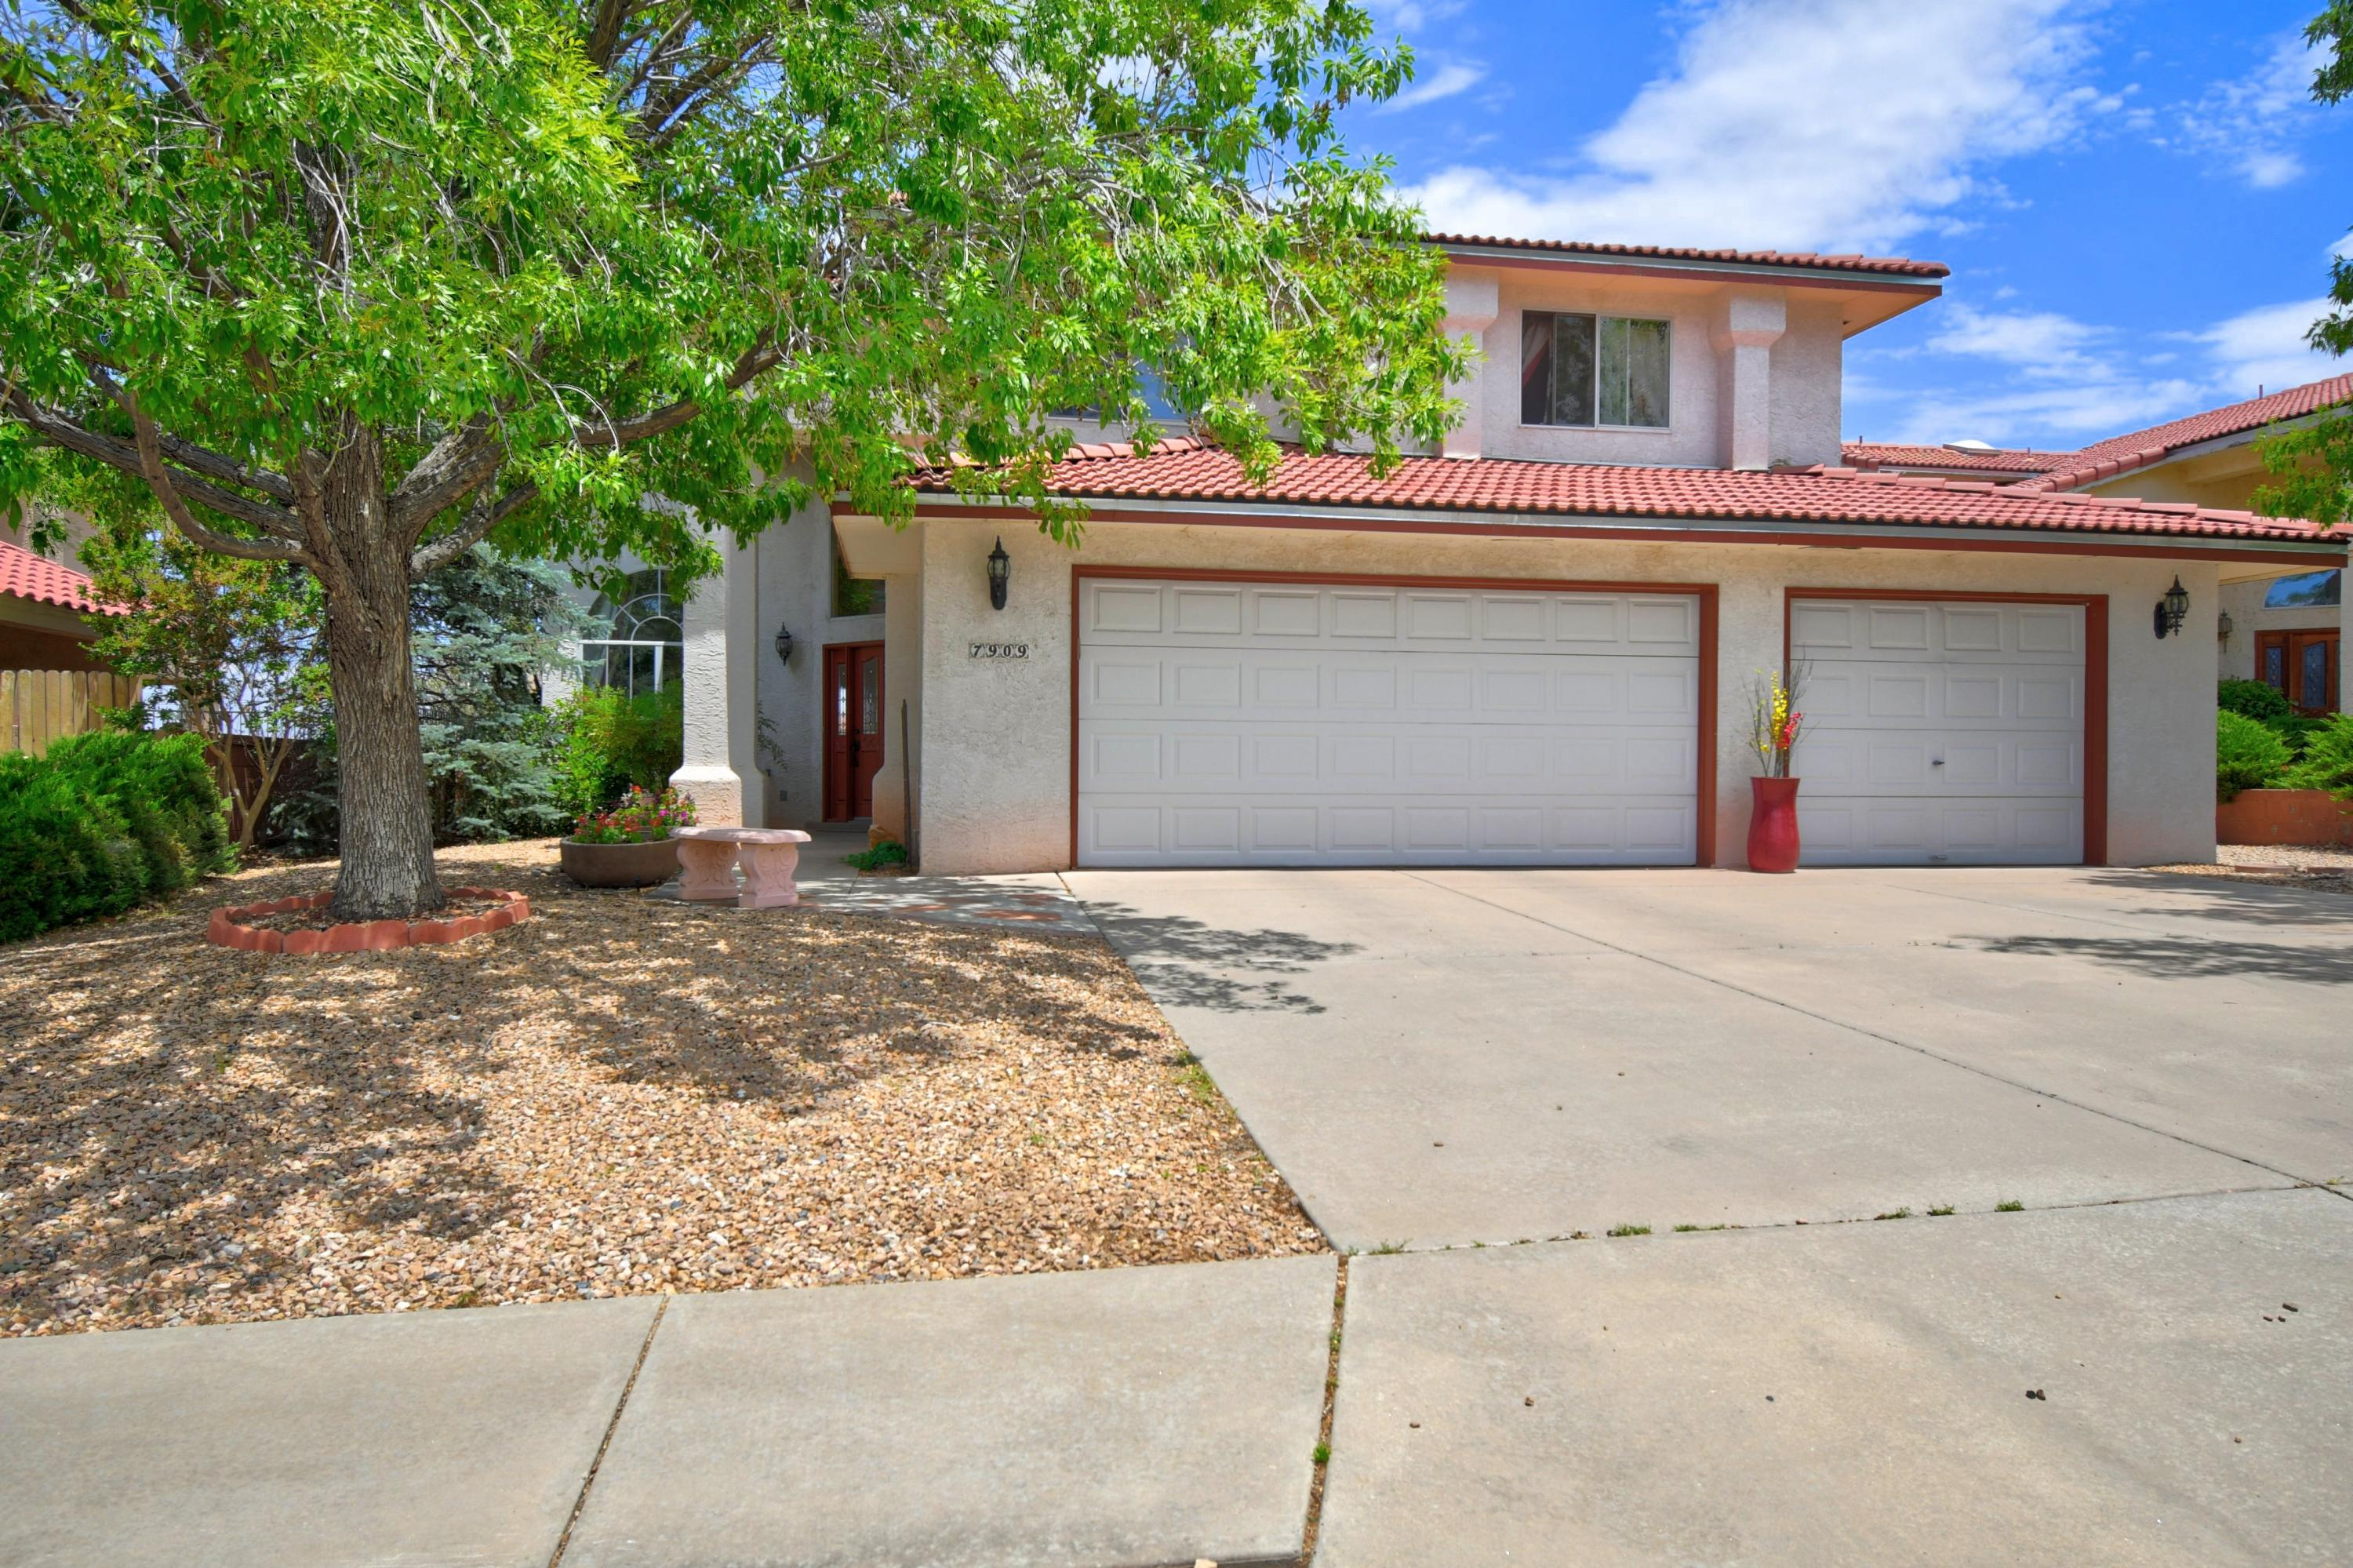 7909 R C GORMAN Avenue NE Property Photo - Albuquerque, NM real estate listing